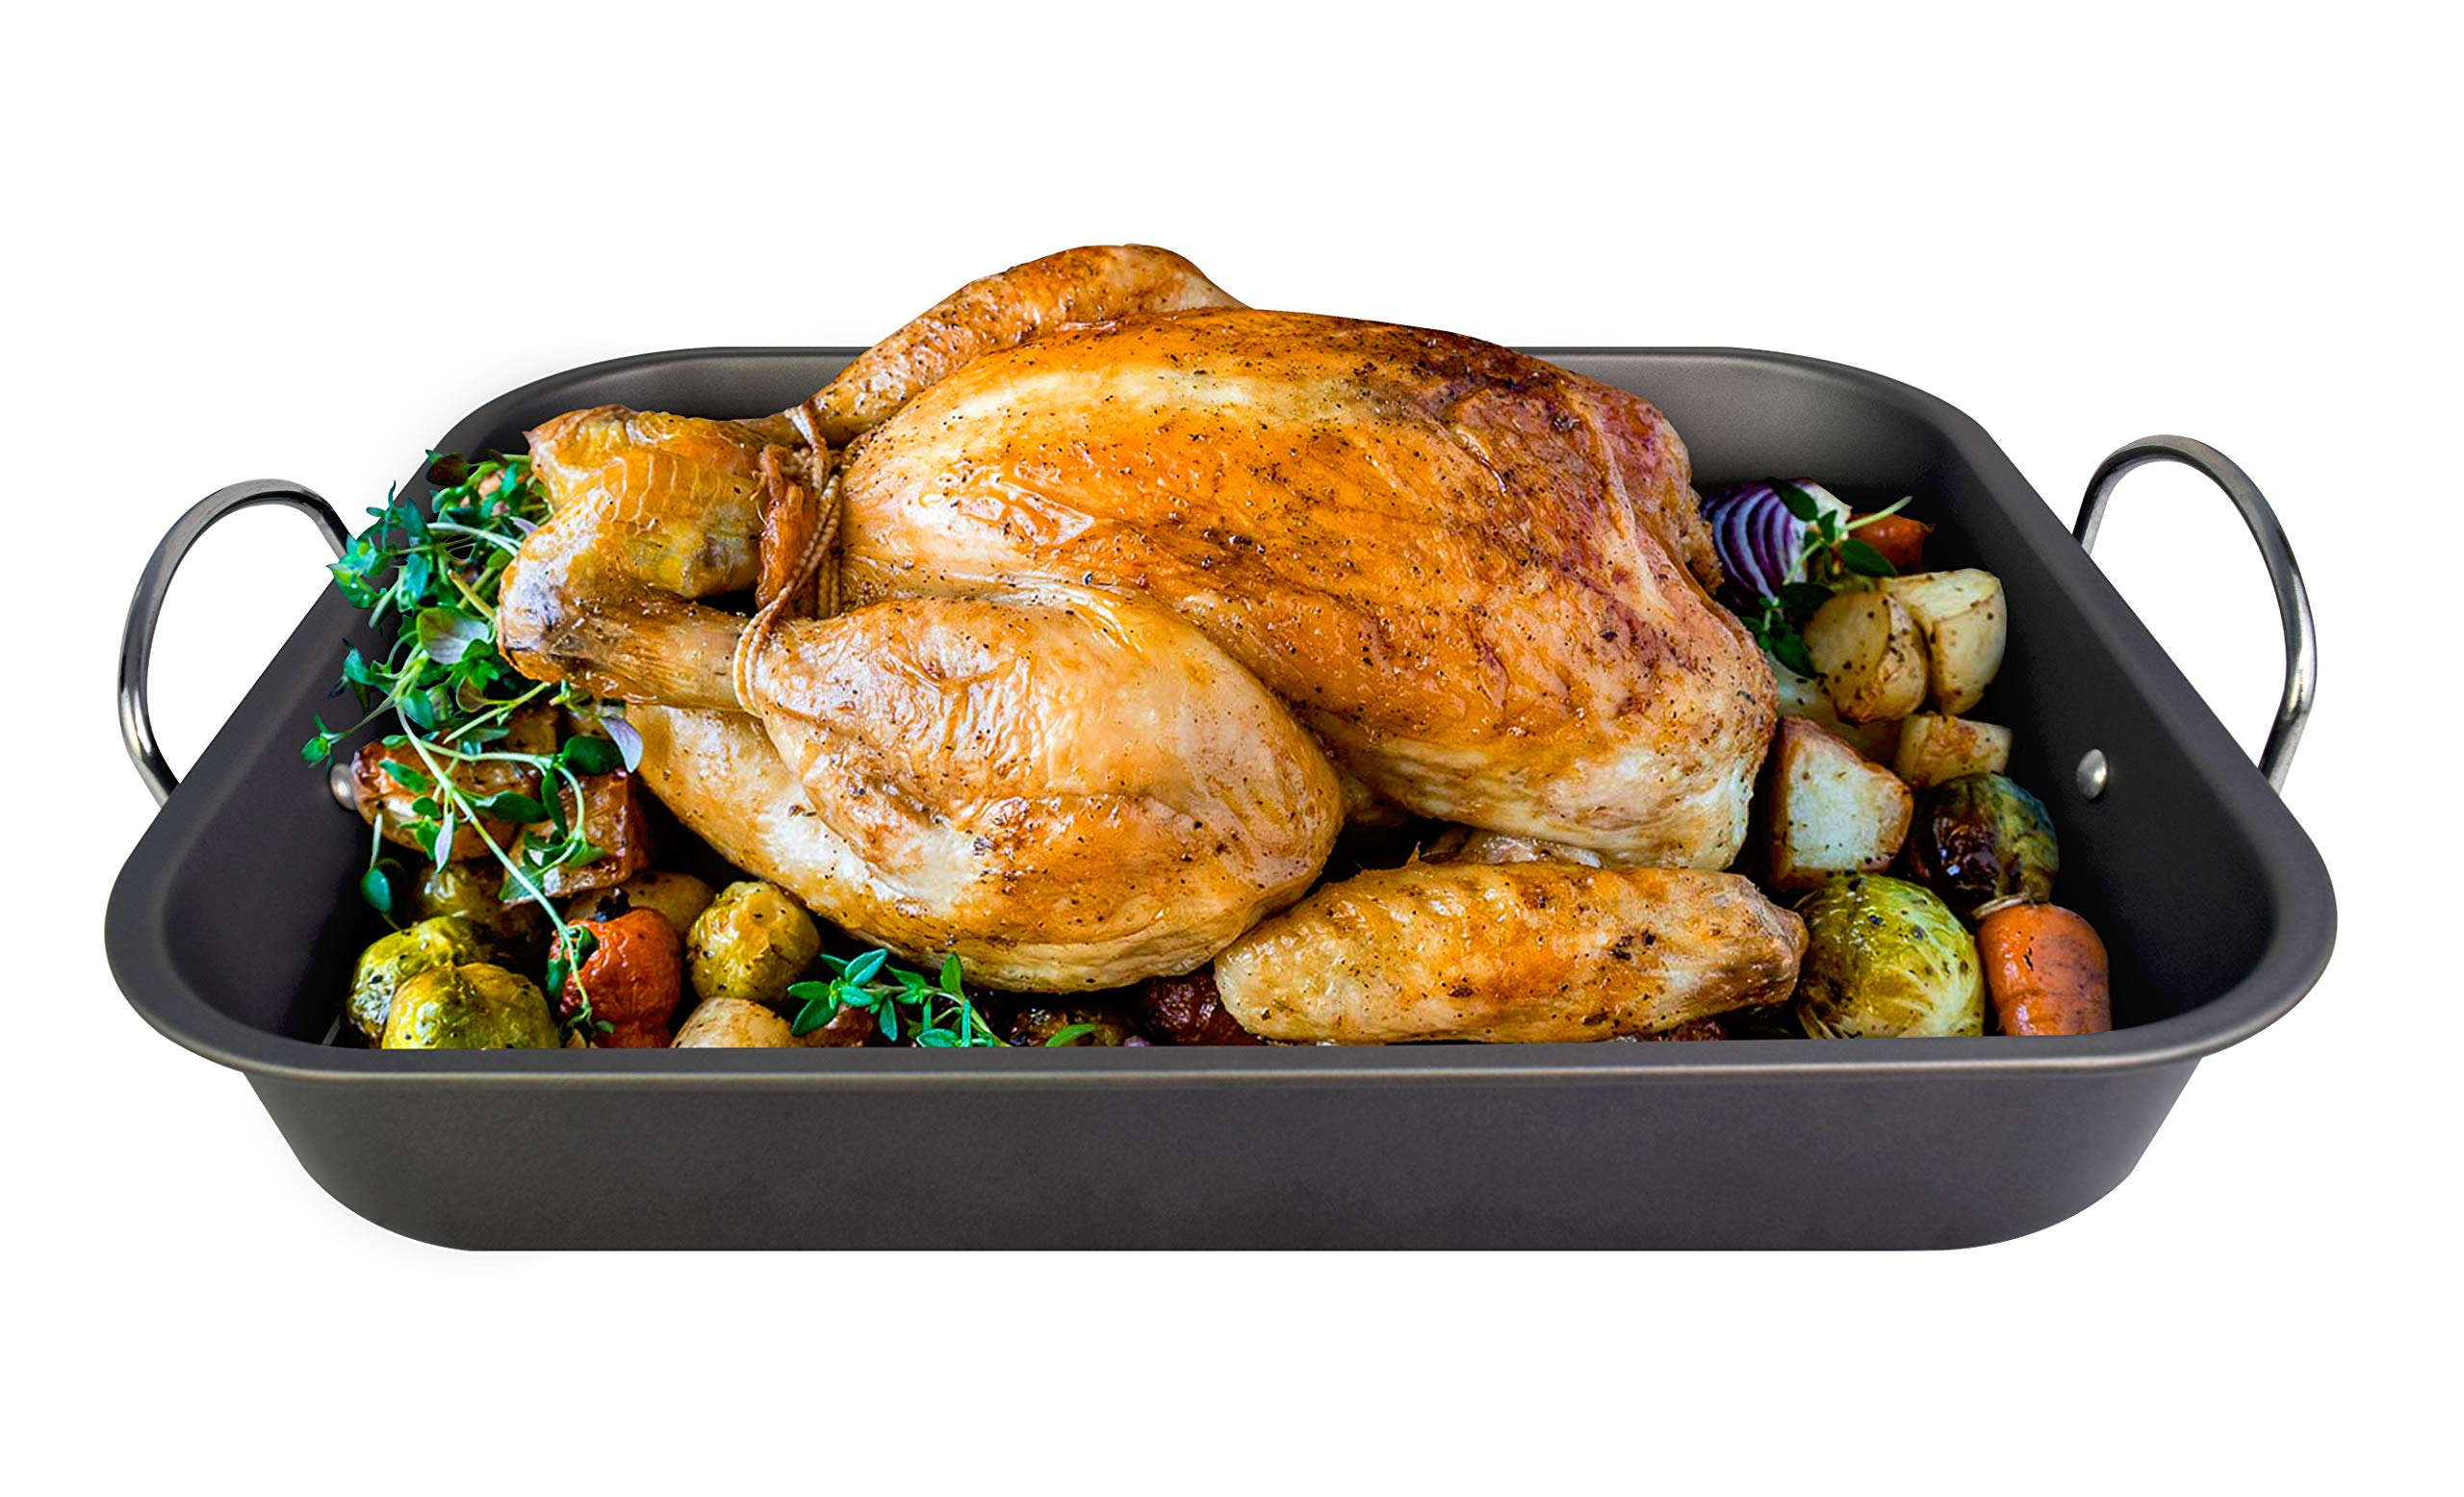 LE REGALO HW1223 Roasting Pan Set with Rack, Moderate, Black